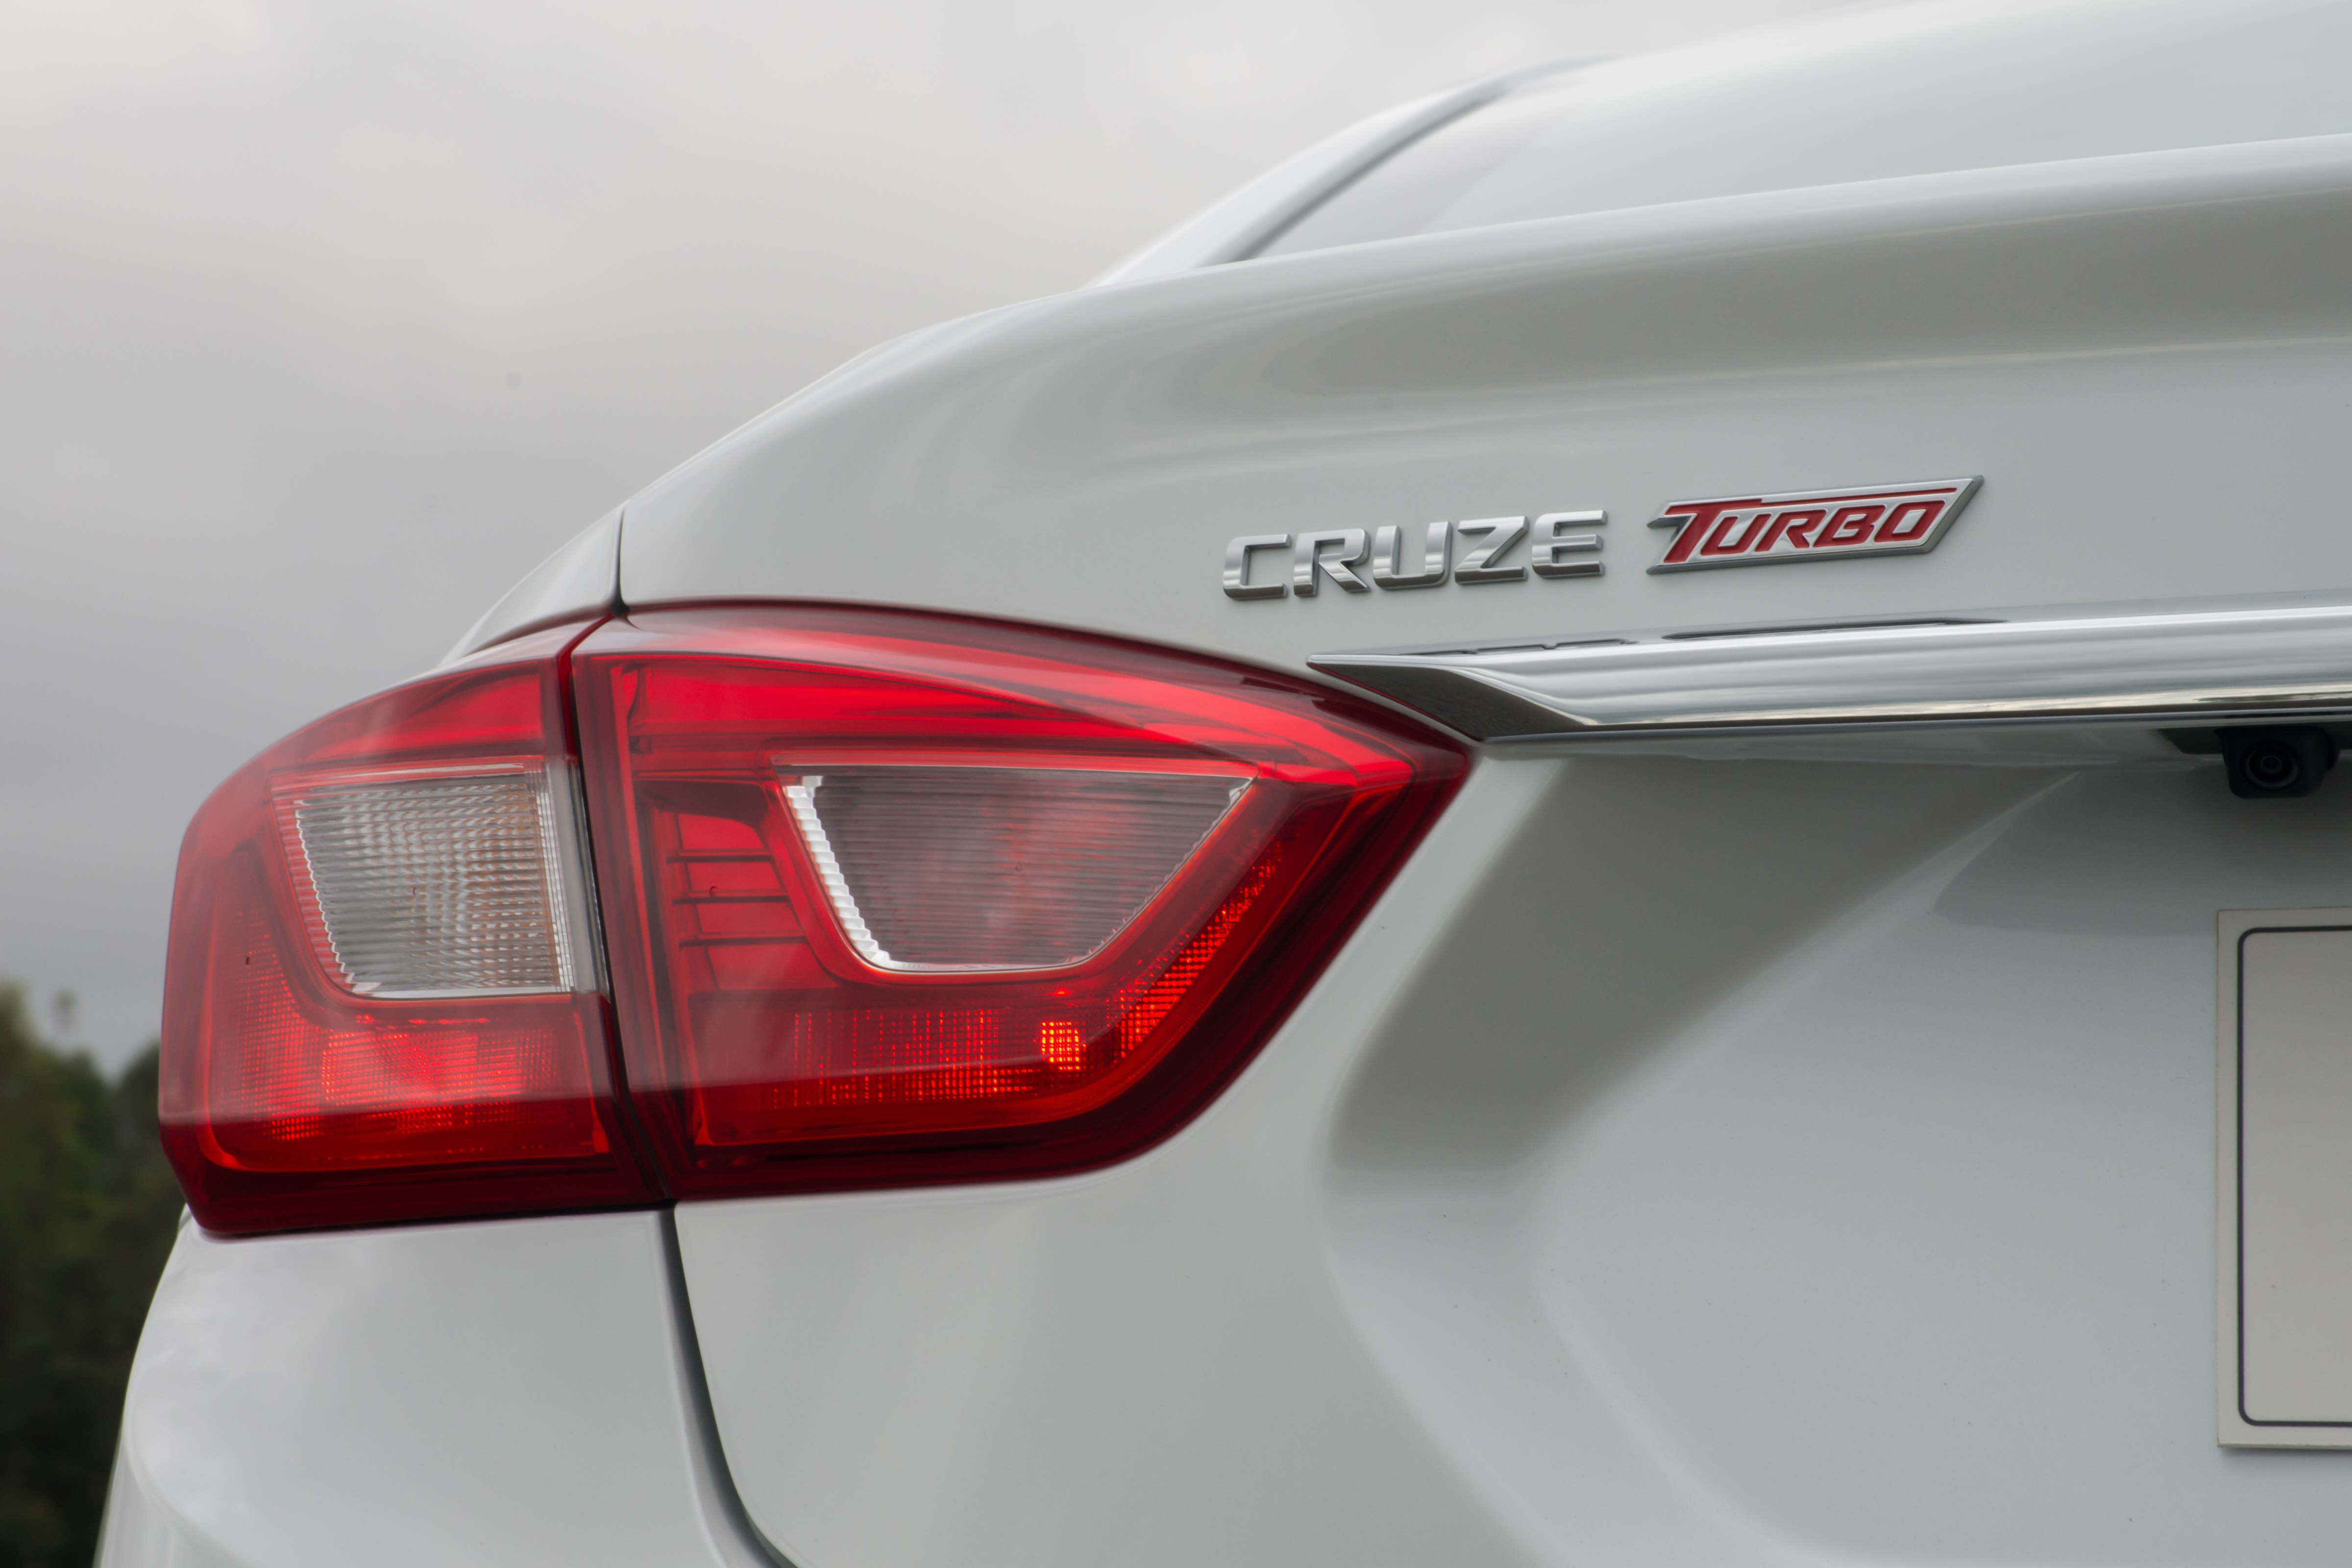 Cruze Turbo Teaser